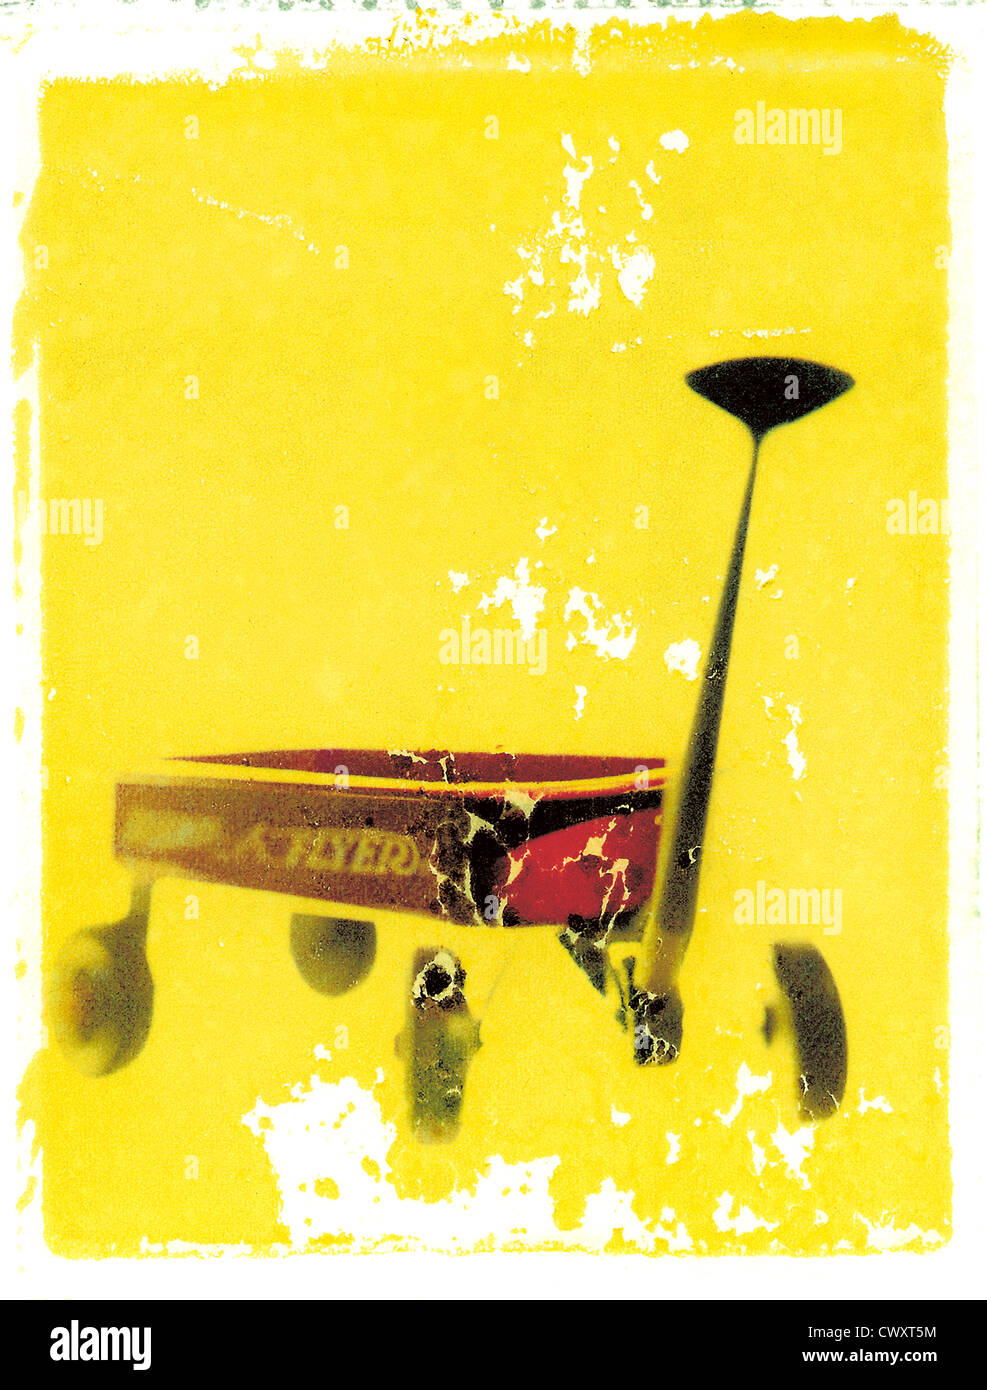 Radio Flyer roten Wagen. Foto-Illustration von Polaroid Transfer. © Mak Stockbild